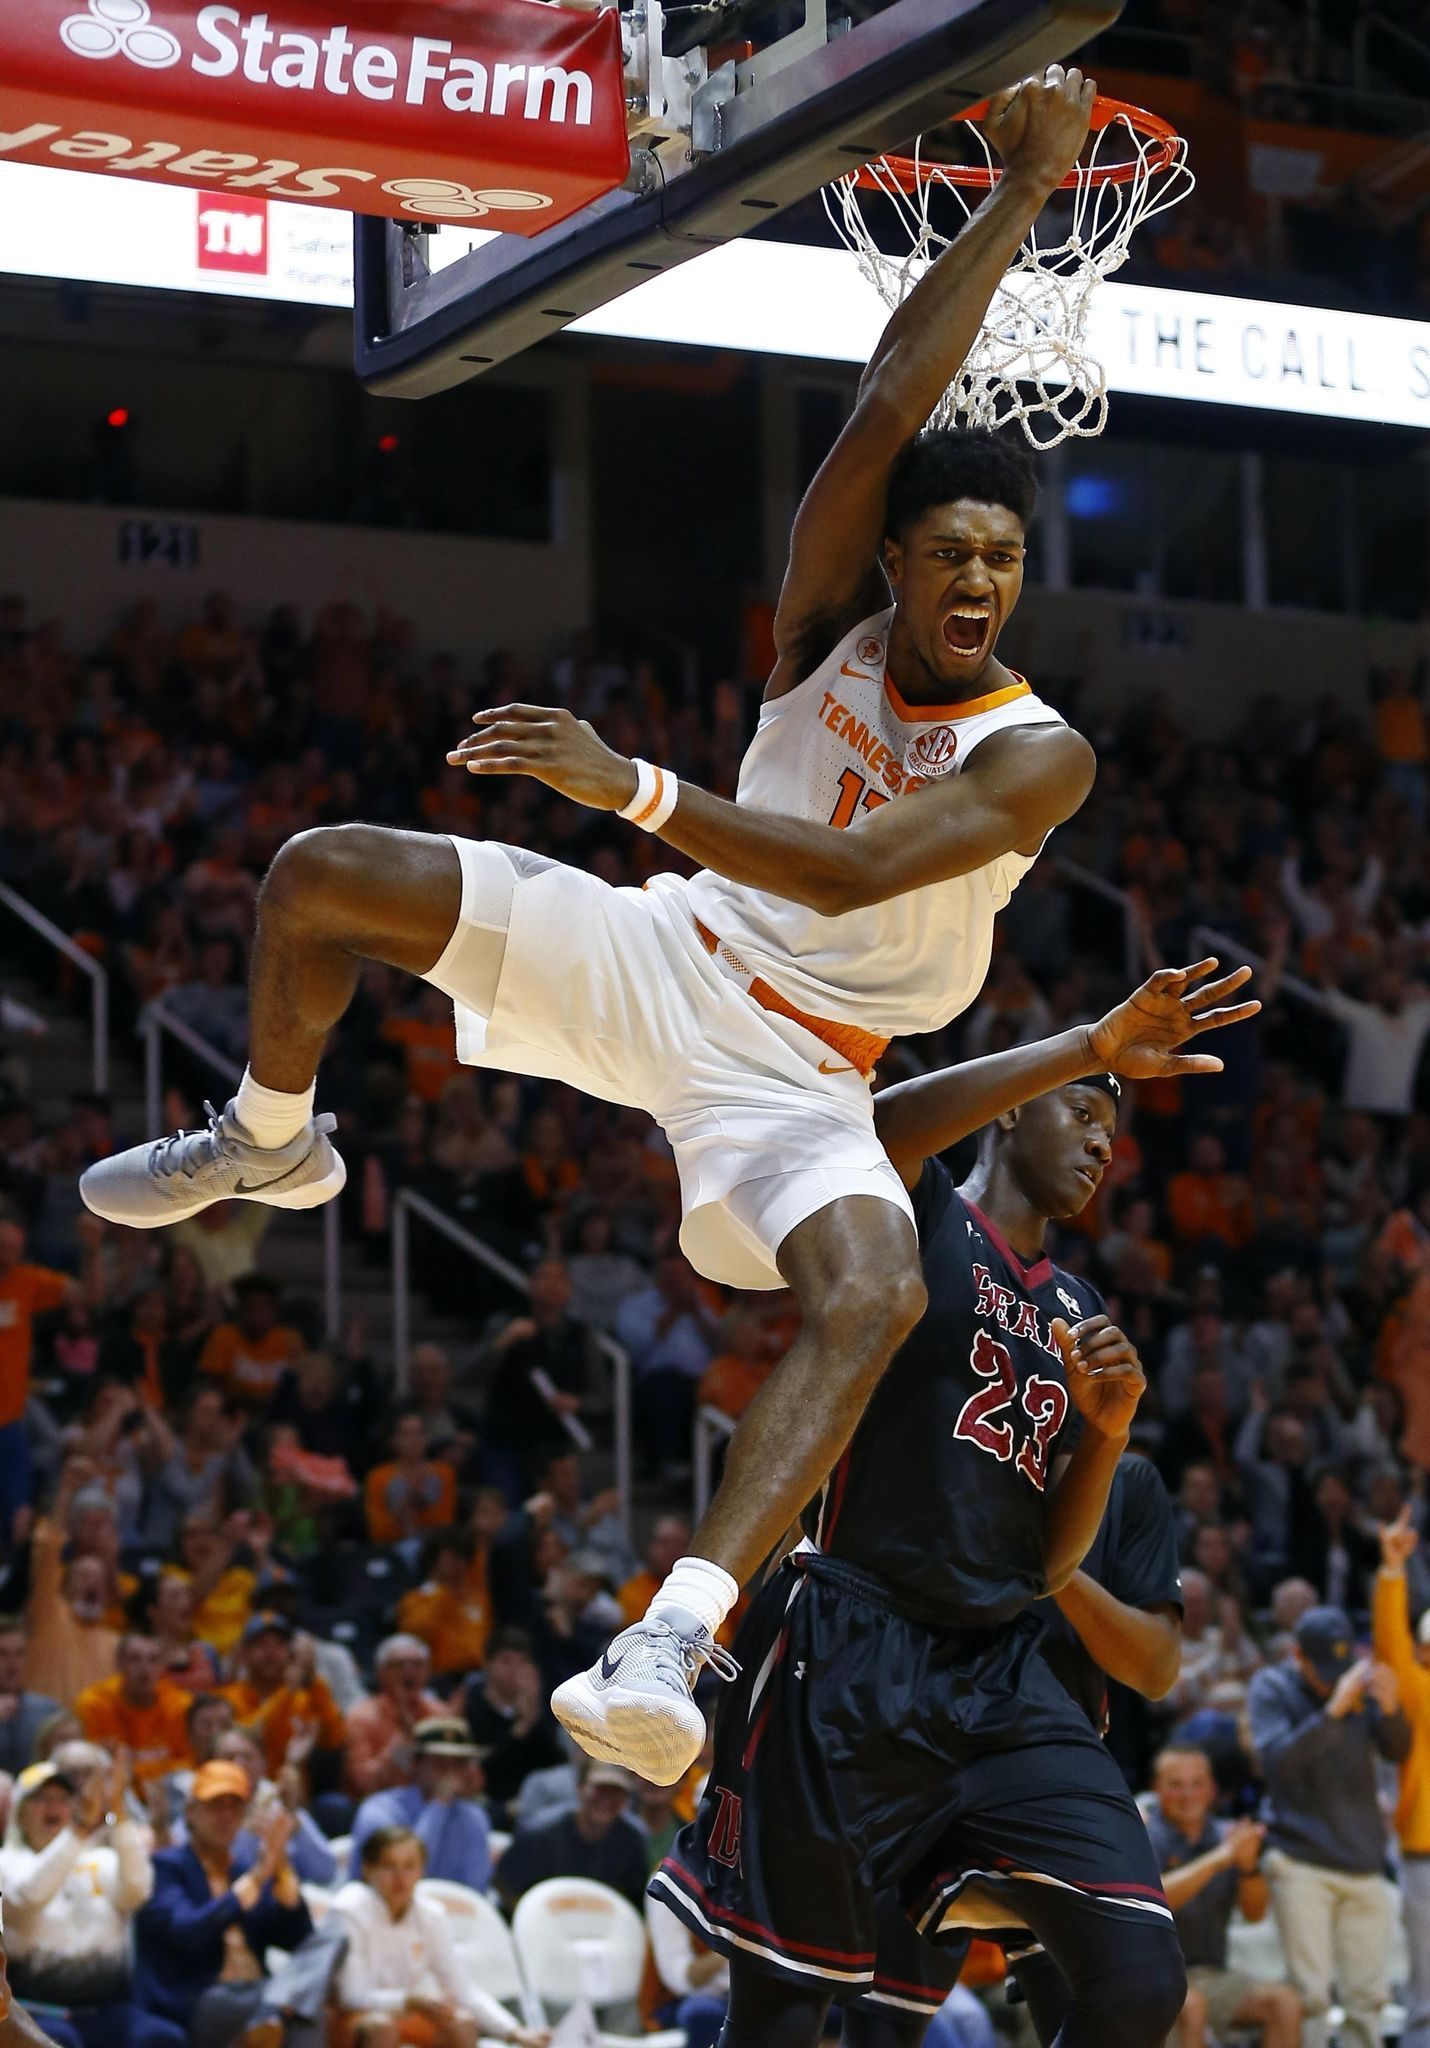 6 Tennessee breezes past Lenoir-Rhyne 86-41 in opener  Tennessee  Basketball   NBA  opener  breezes  LenoirRhyne No. 6 Tennessee breezes past  Lenoir-Rhyne ... ae27ecefc8c